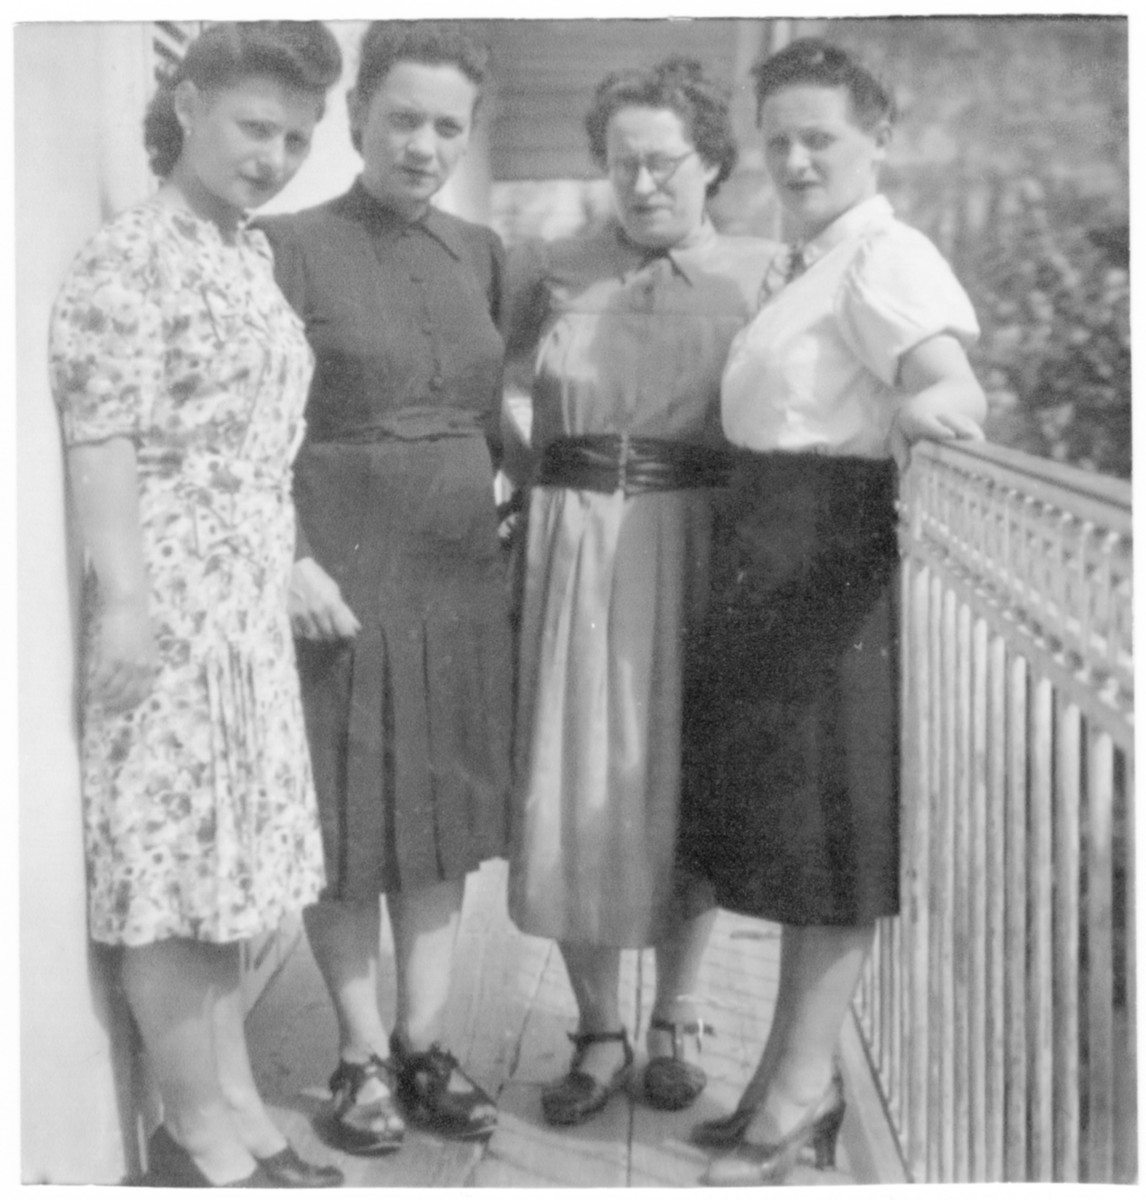 Four Jewish sisters pose on the balcony of an apartment in Brides-les-Bains where they are in hiding.  Pictured are Nezi Orenstein, Cecile Rachlin, Feige Hodak, and  Claire Lazarovitch.